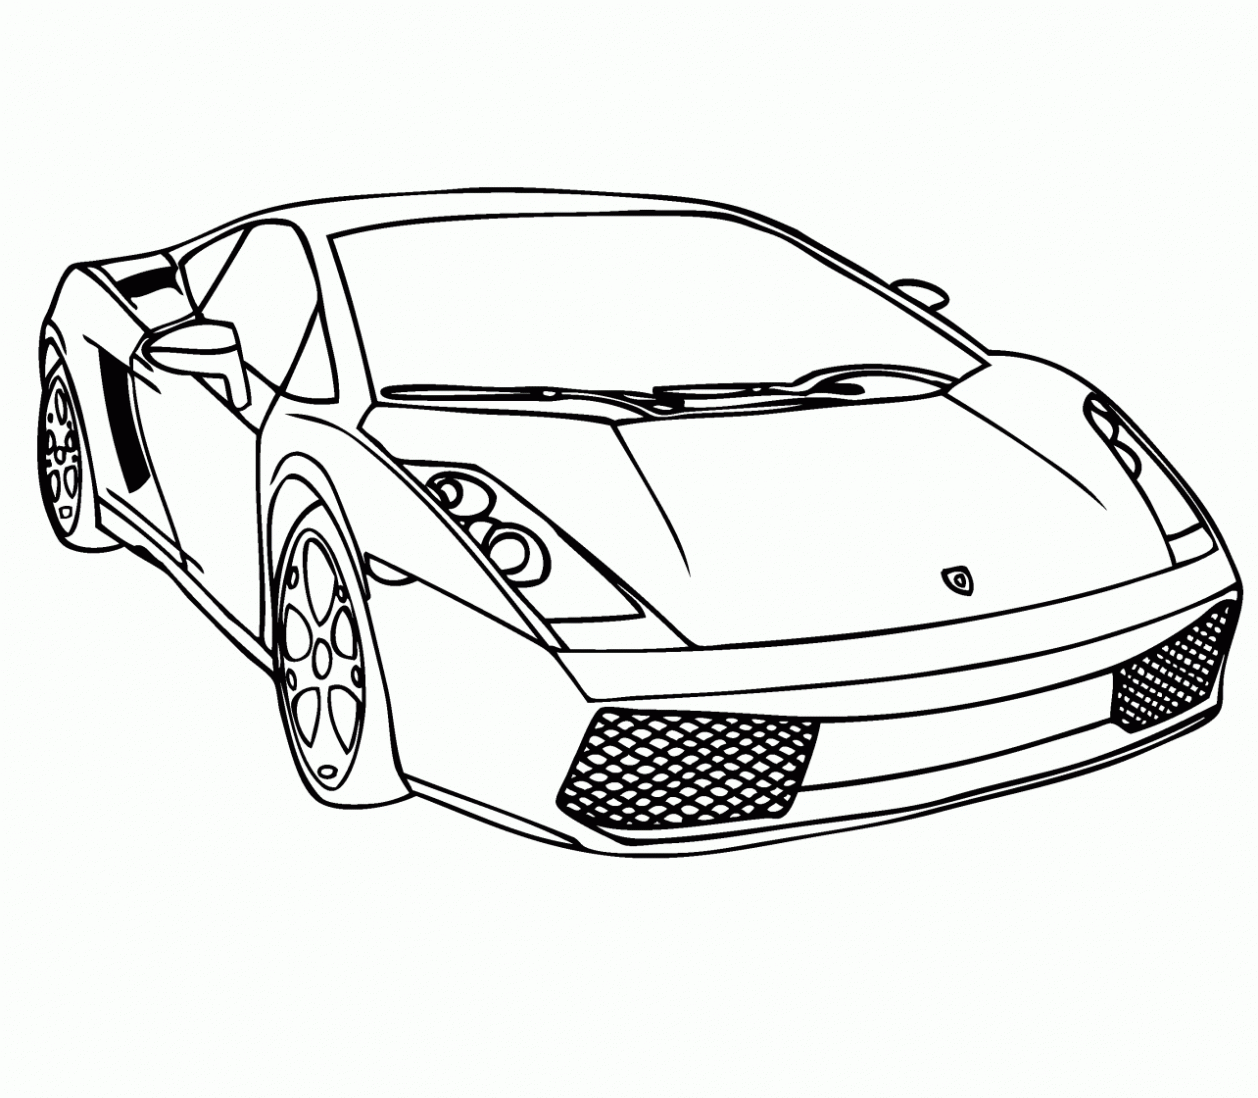 800x510 Download Lamborghini Coloring Pages 1258x1098 Drawn Traceable